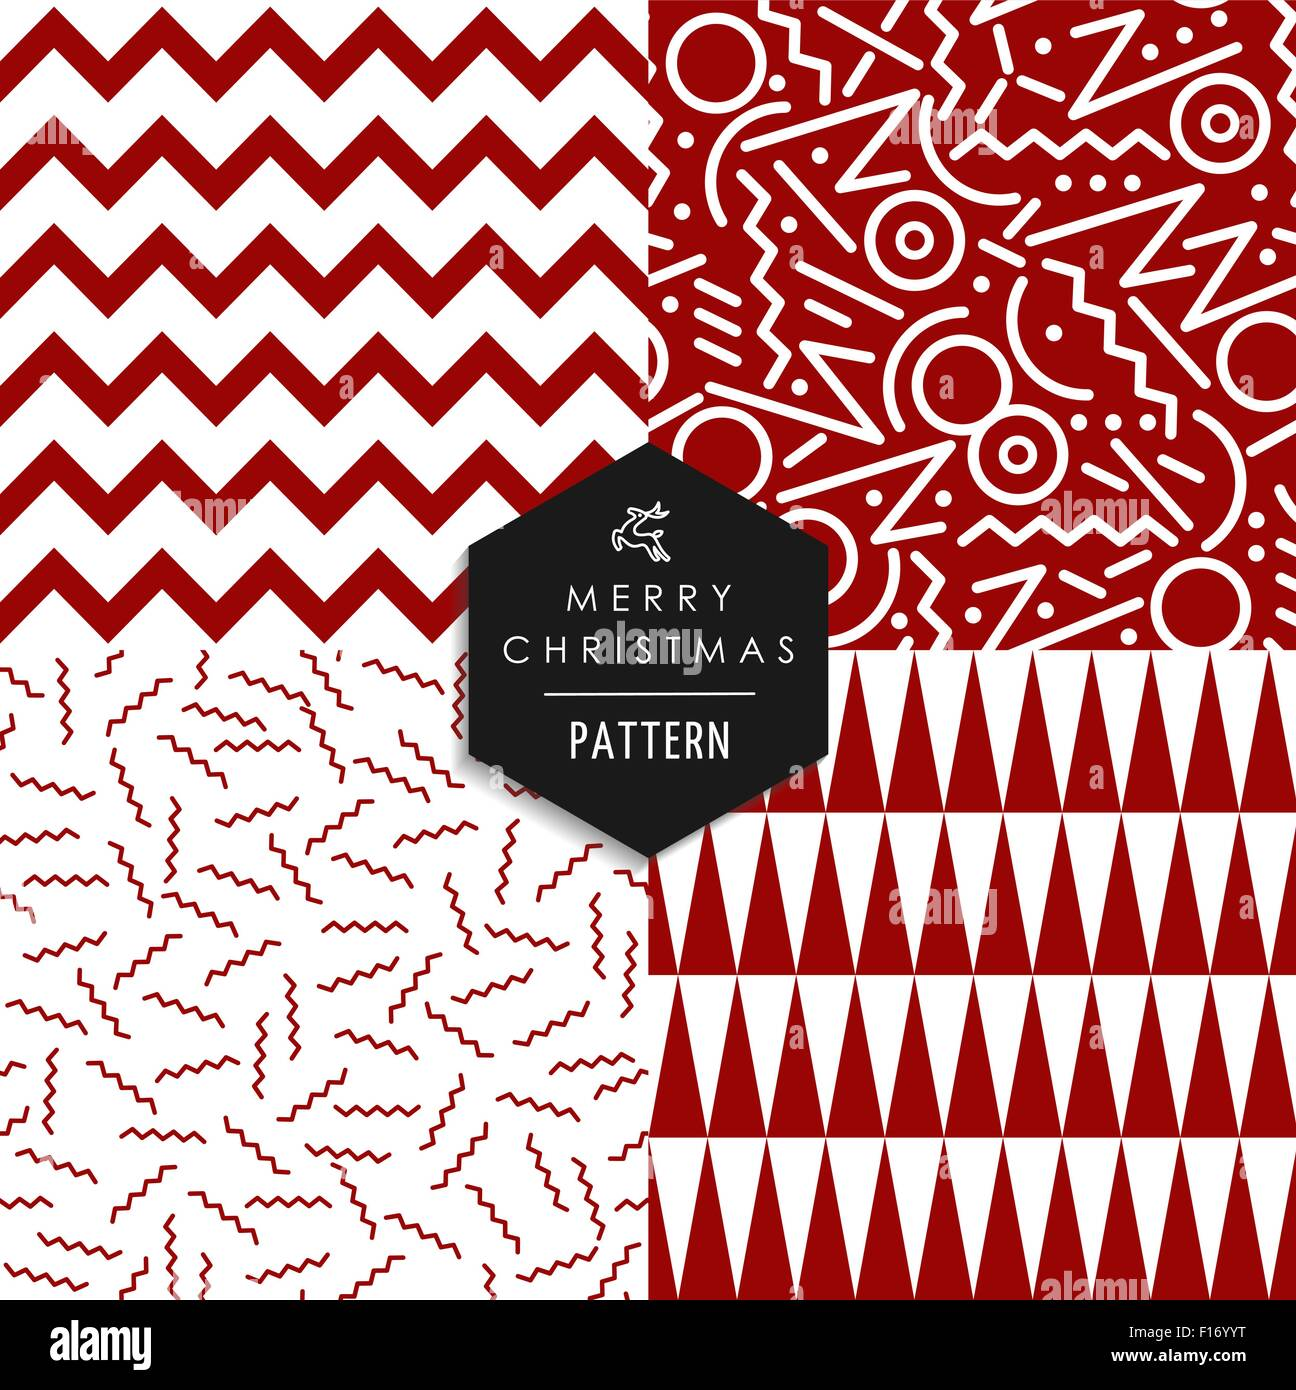 Merry Christmas Retro 80s Style Seamless Pattern Set Holiday Hipster Red And White Shapes Xmas Background EPS10 Vector File